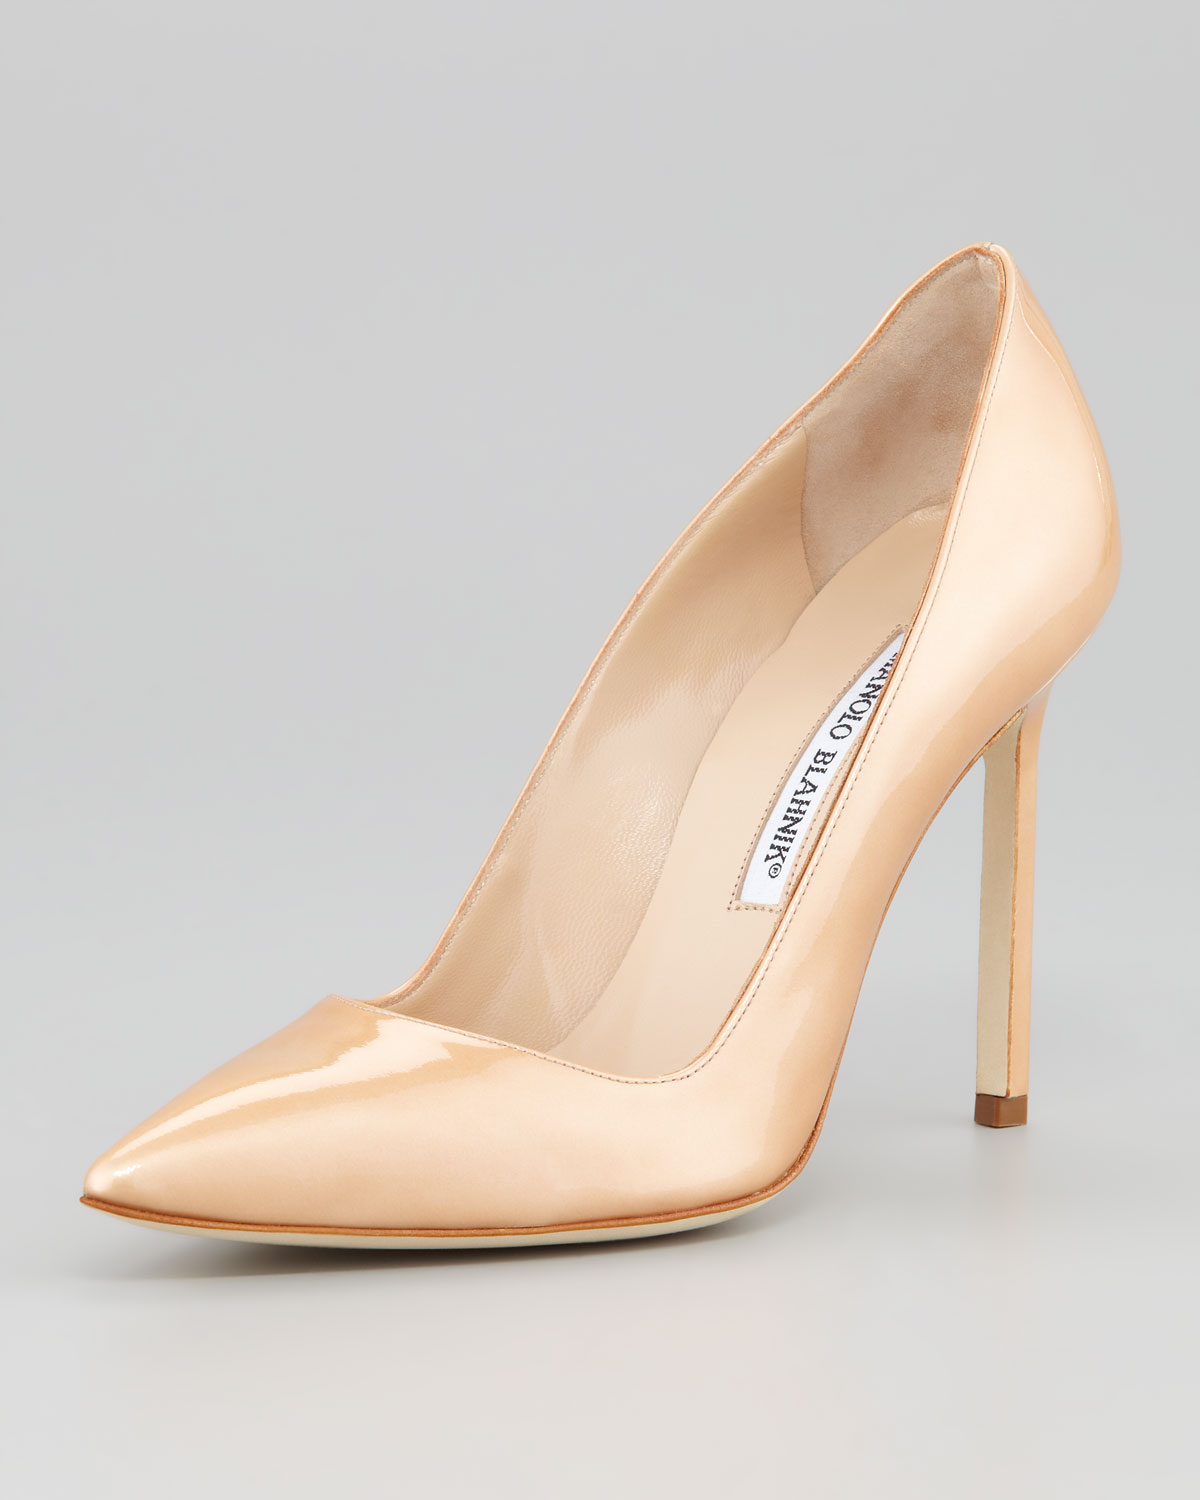 Manolo Blahnik Bb Pearly Patent Pump In Natural Lyst